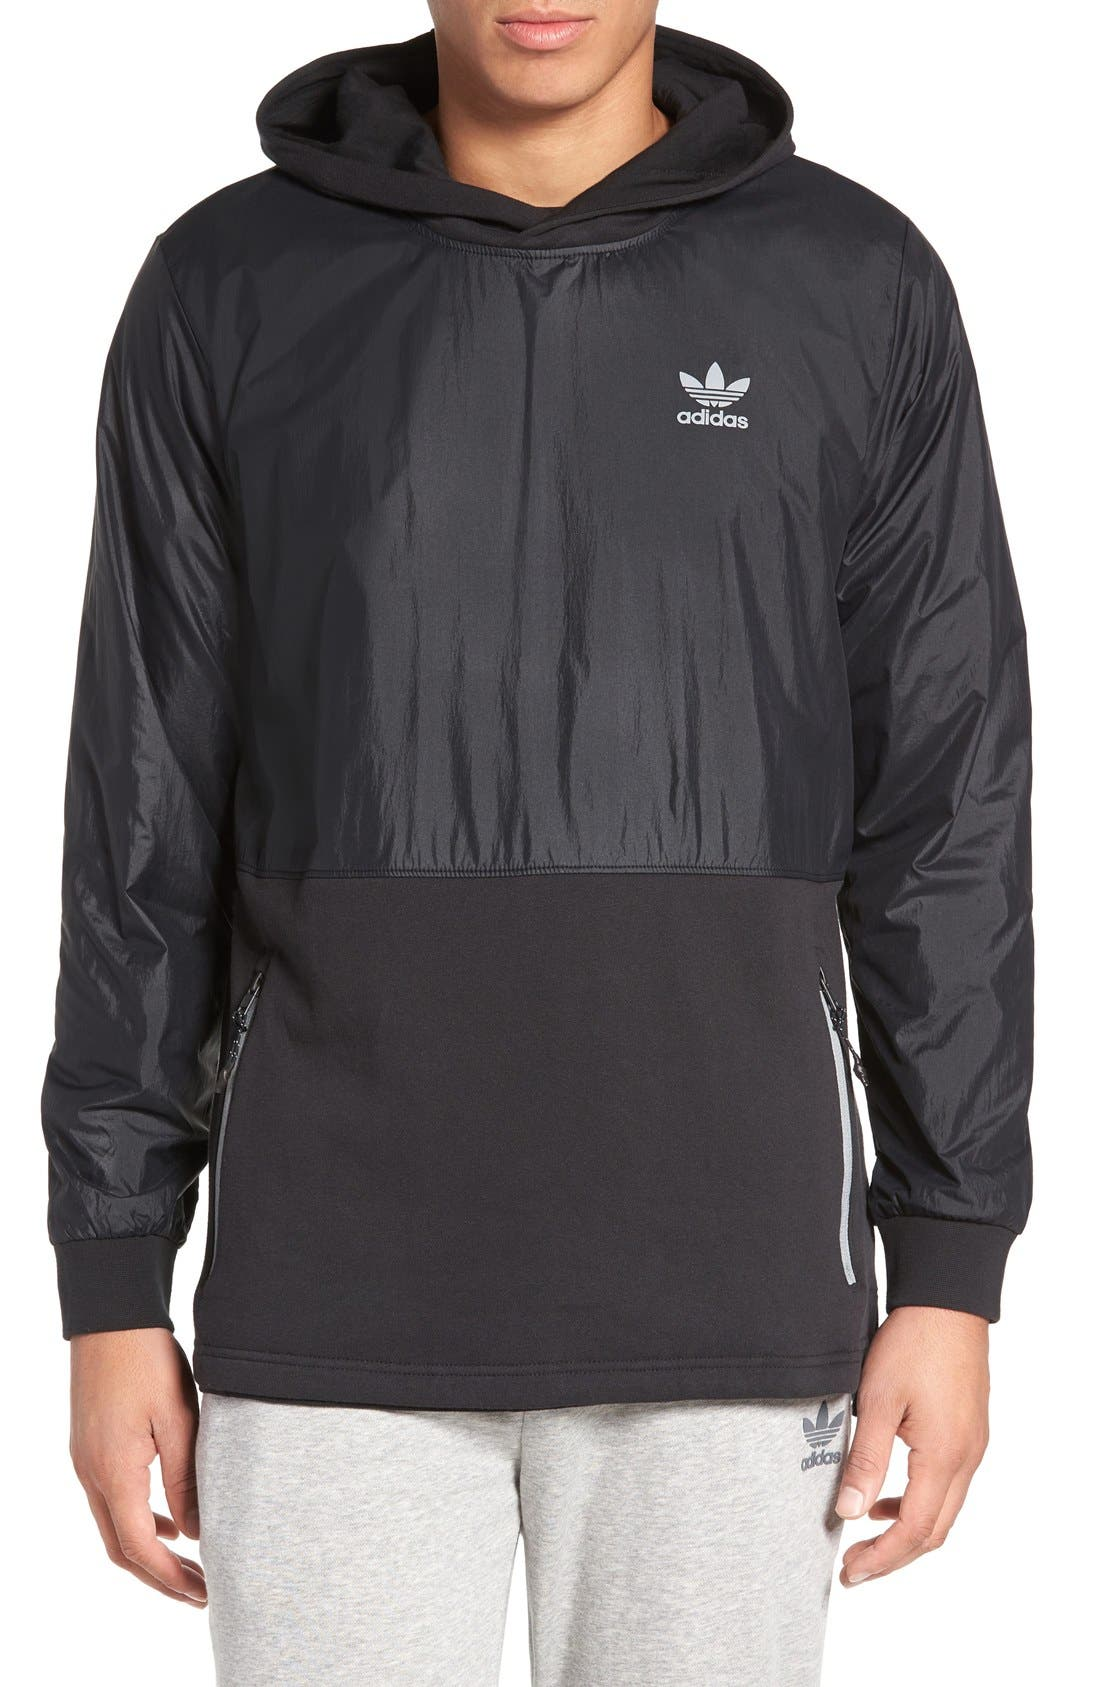 ADIDAS ORIGINALS Sport Luxe Mix Hoodie, Main, color, 001